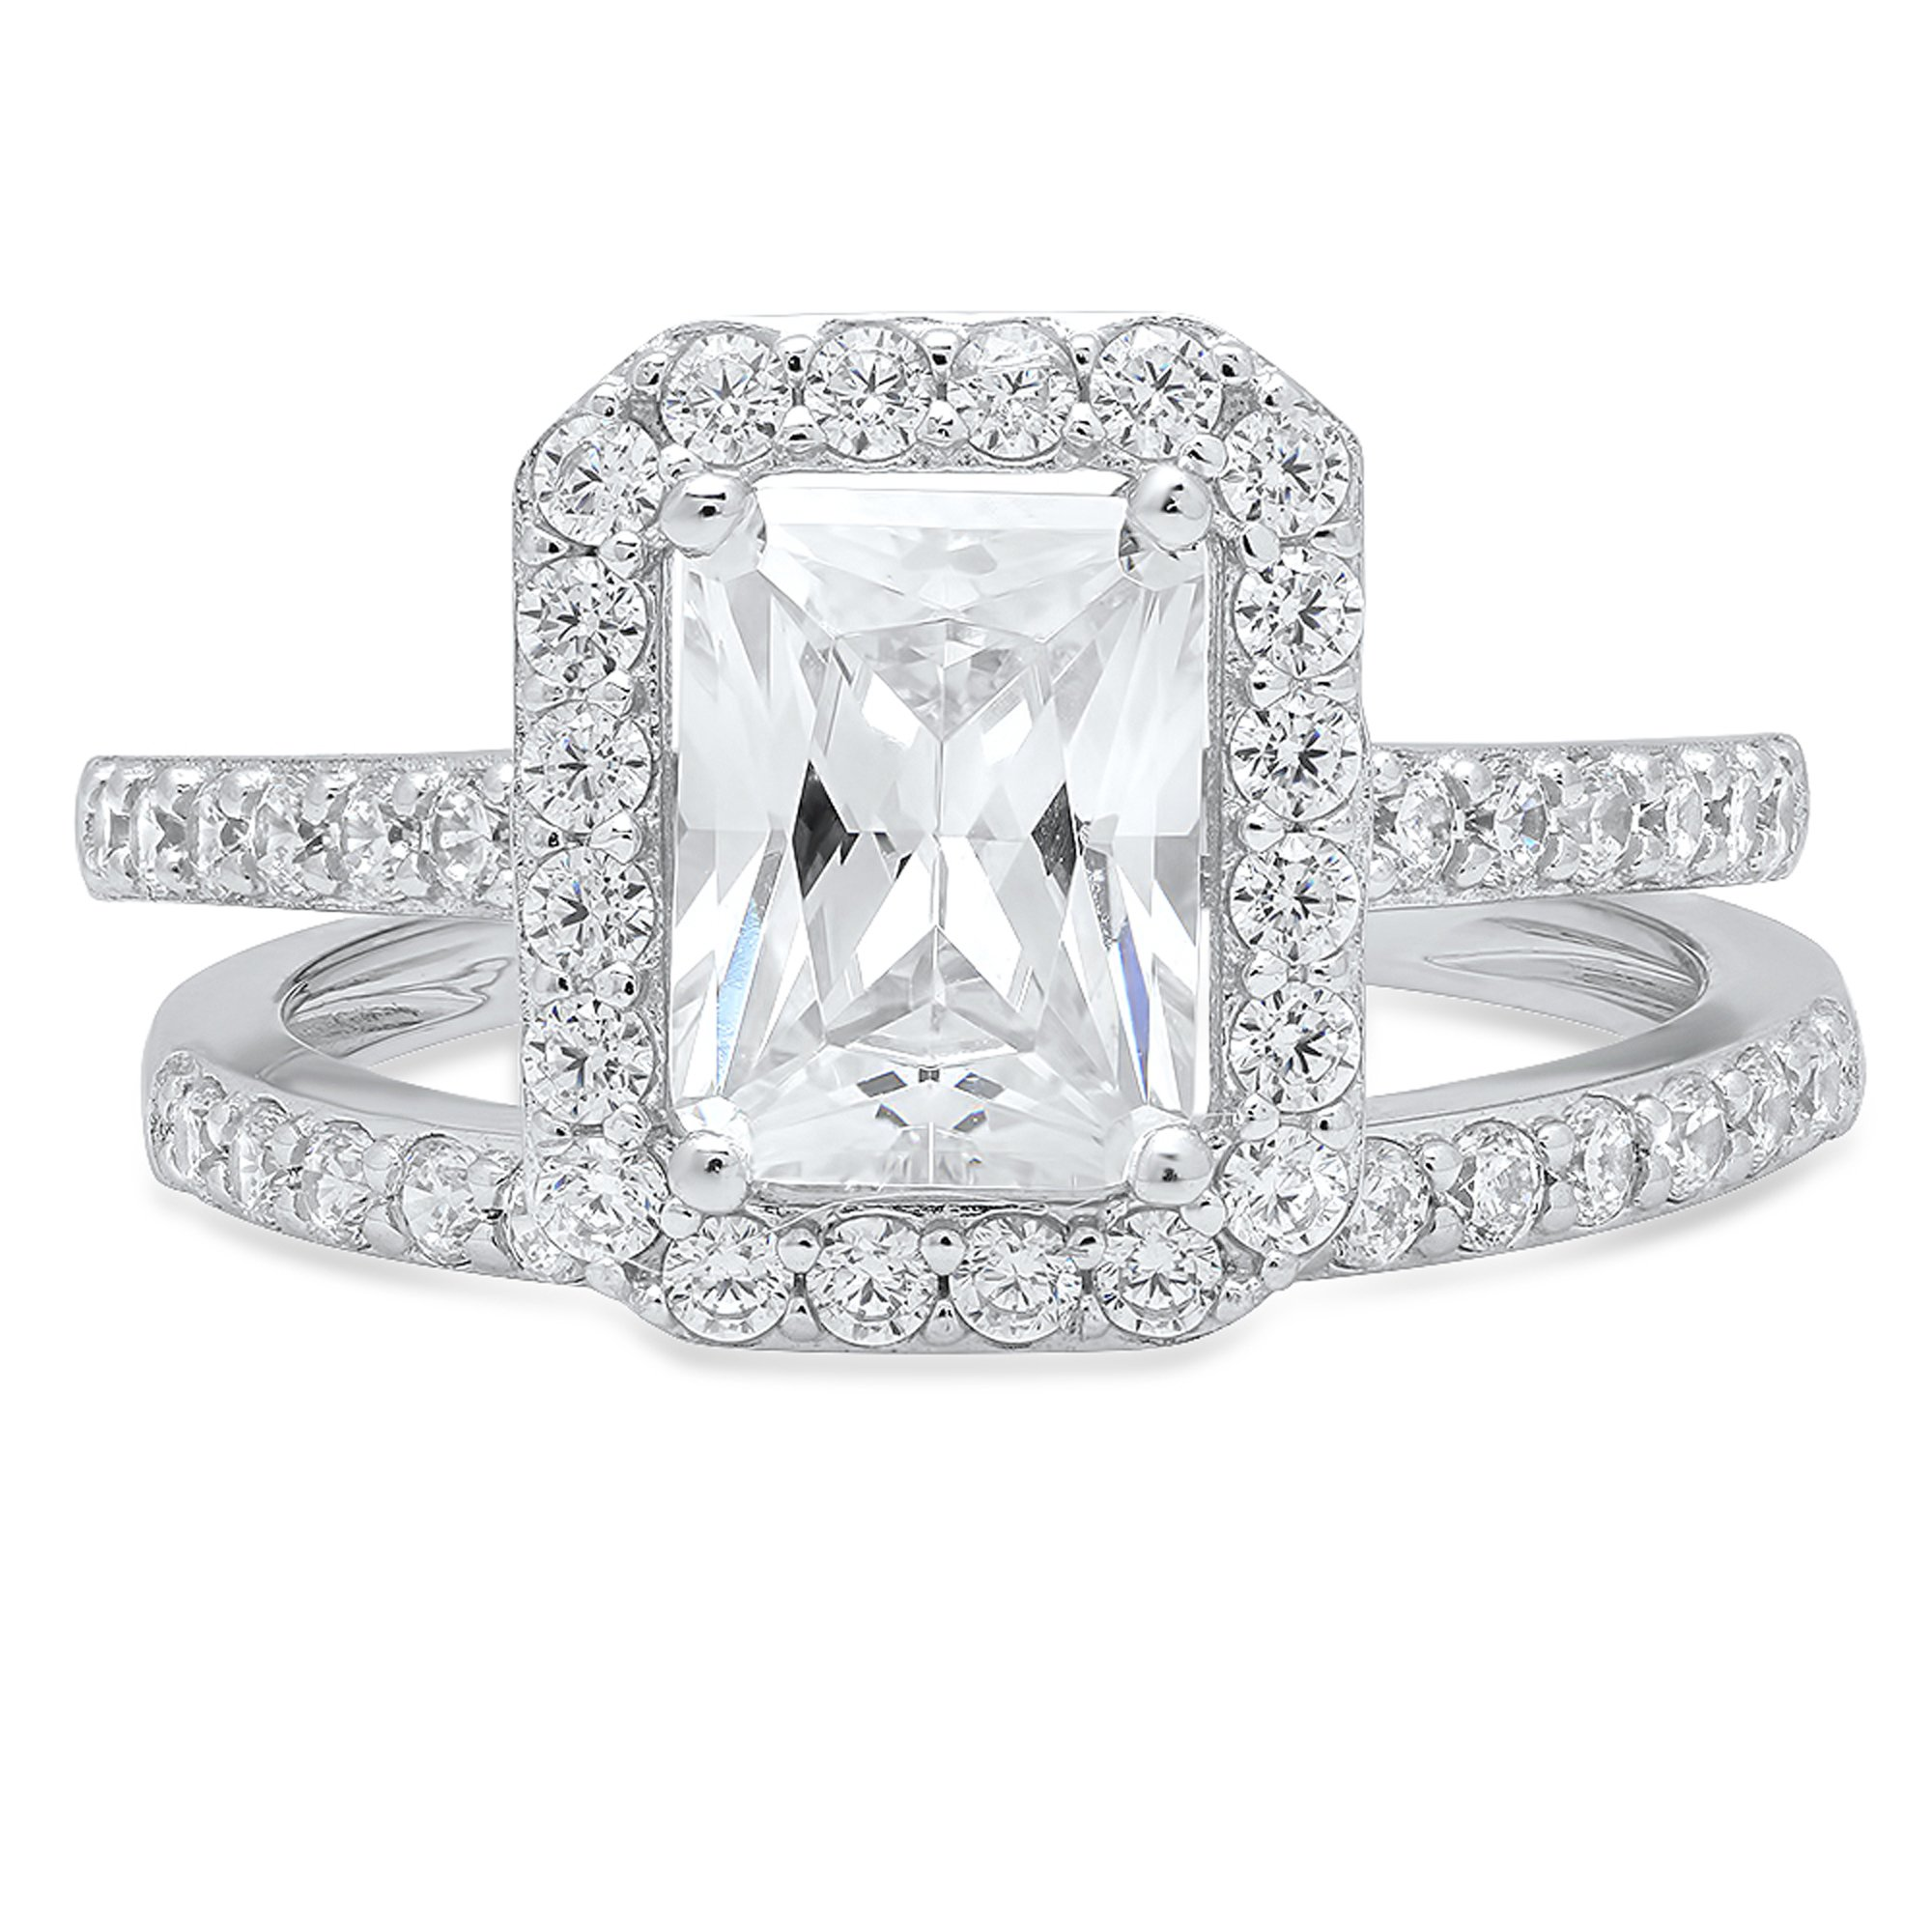 Clara Pucci Emerald Cut Solitaire Pave Halo Bridal Engagement Wedding Promise Ring band set 14k White Gold, 2.05CT, Size 6.5